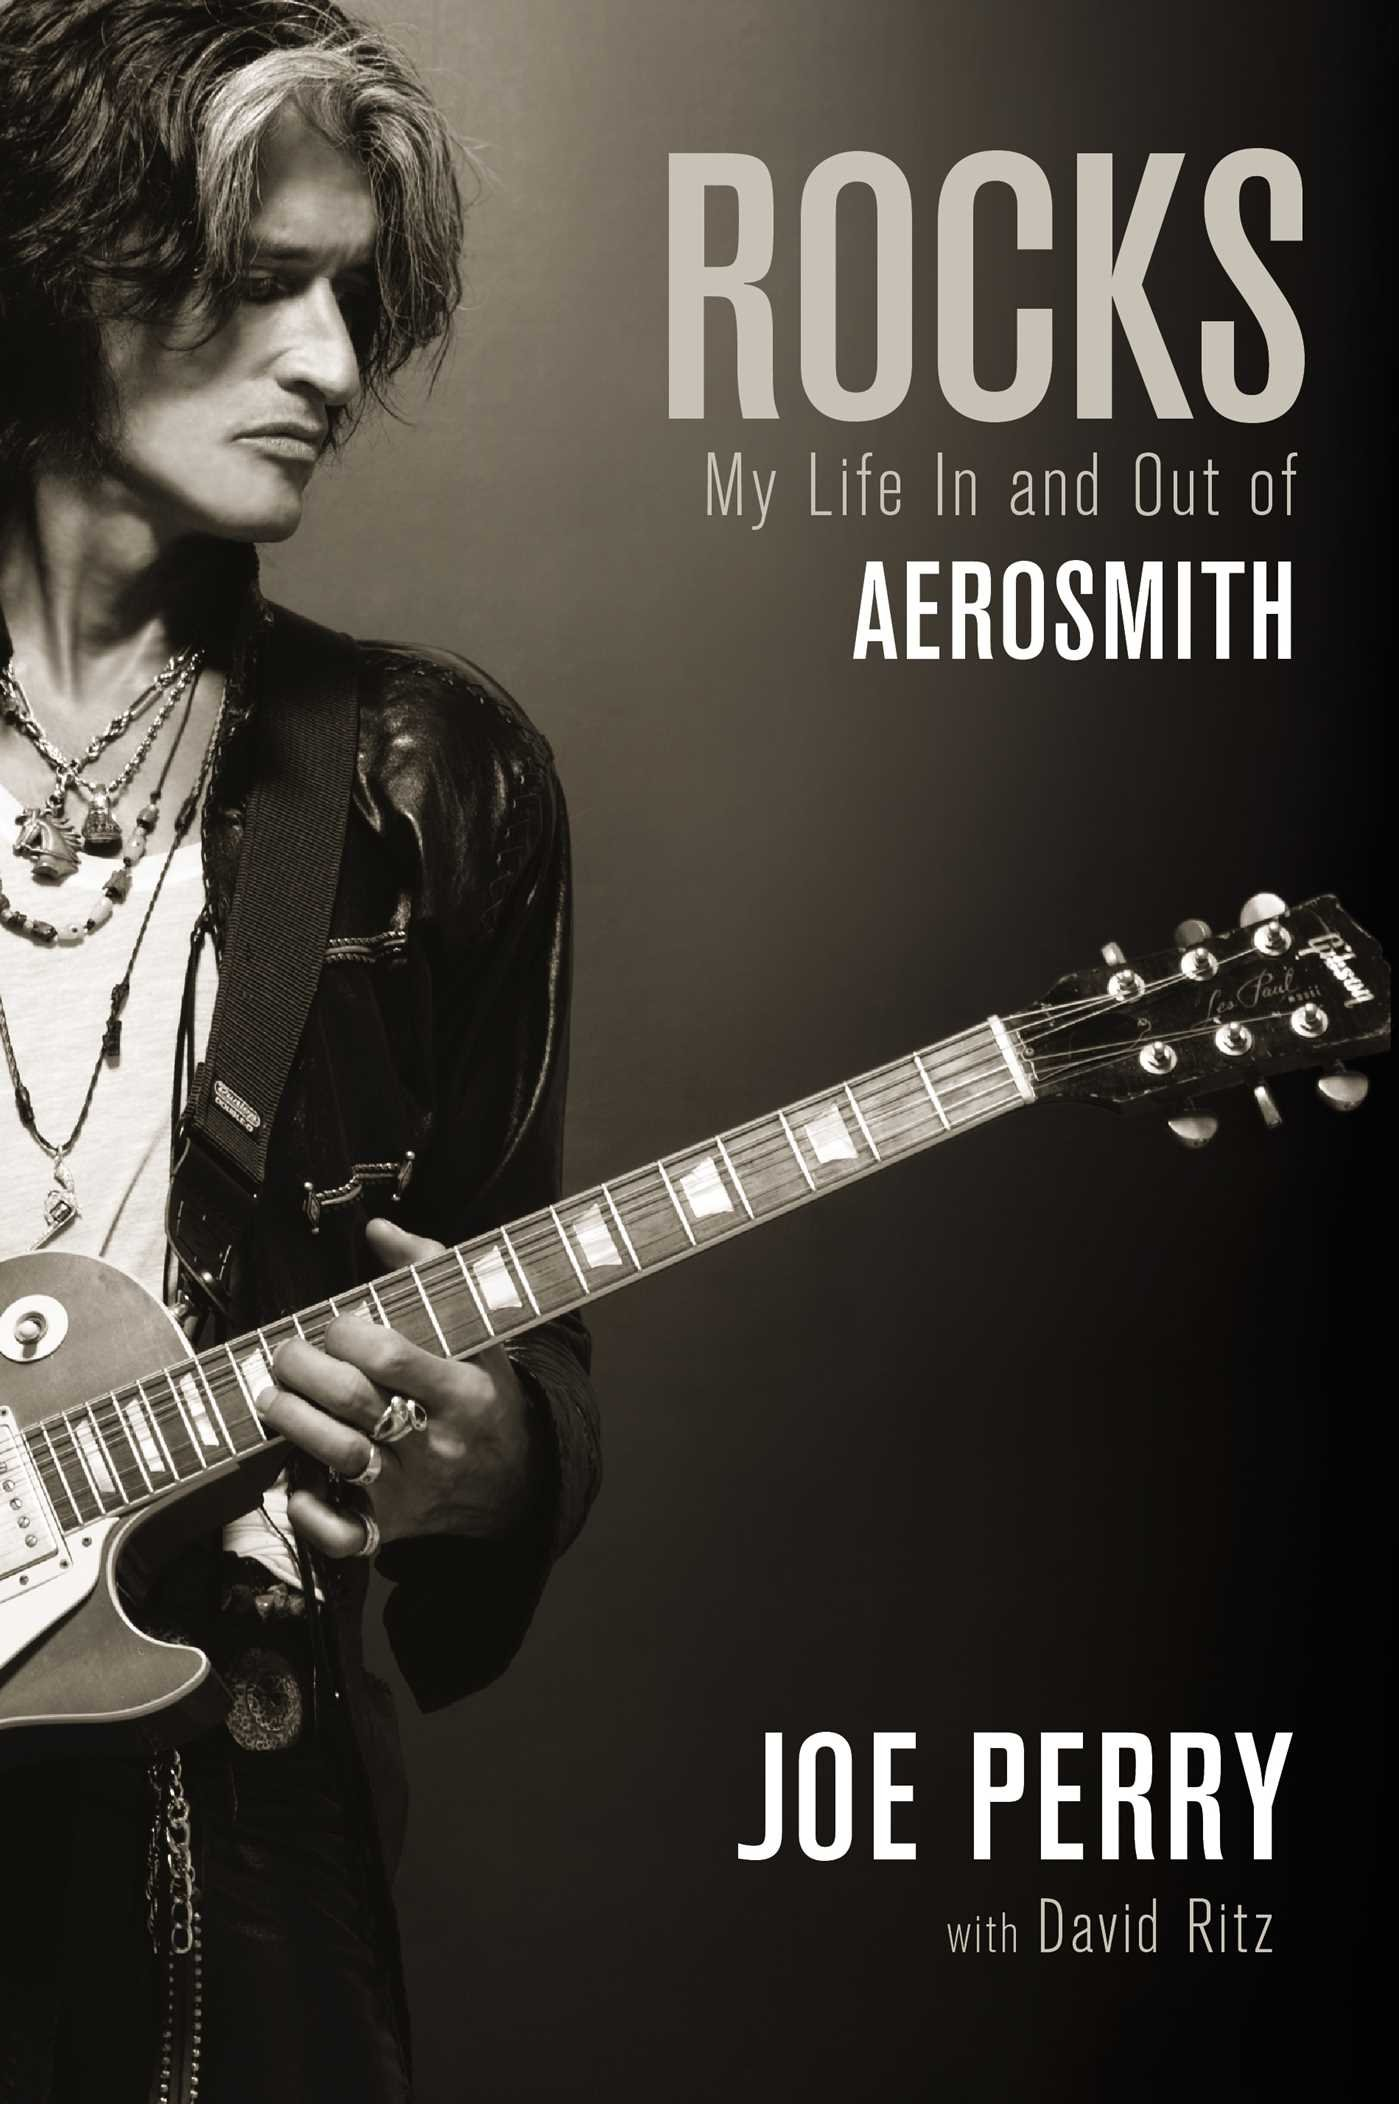 """Rocks: My Life In and Out of Aerosmith"" by Joe Perry"